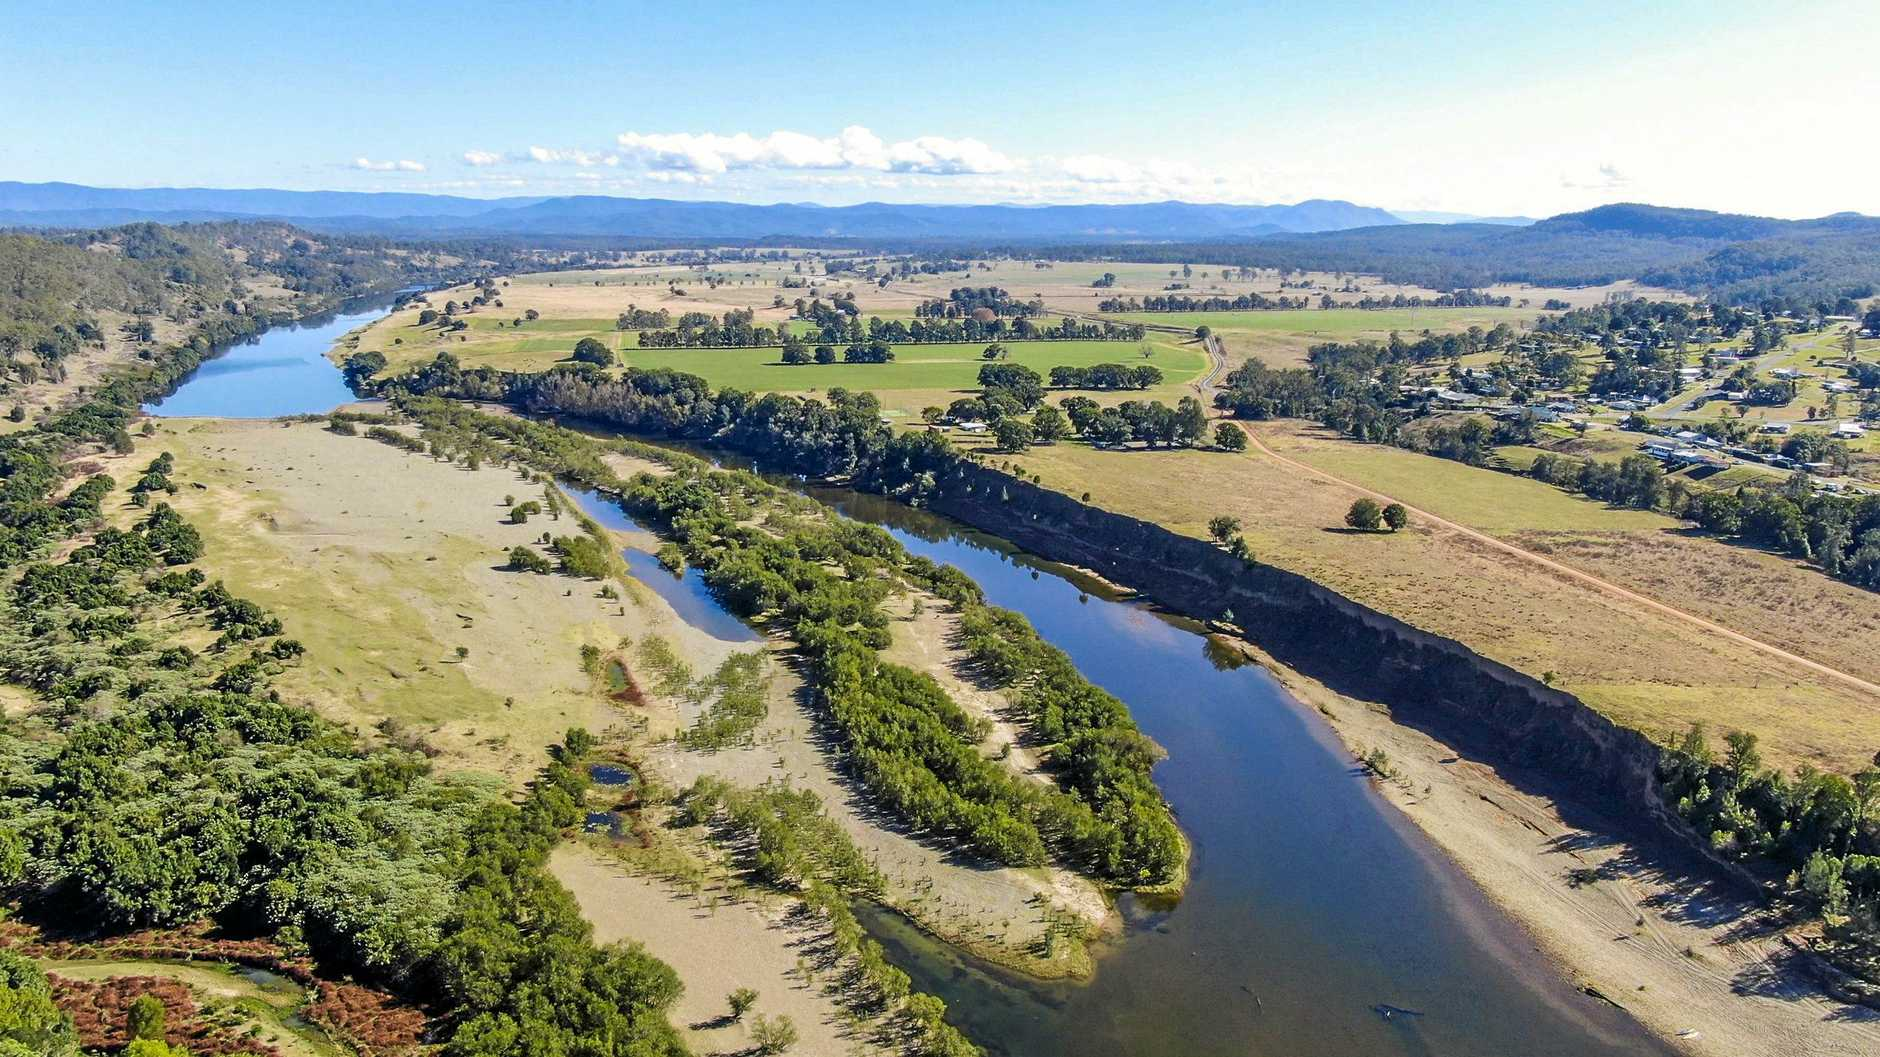 WATER FLOW: The upper reaches of the Clarence River are running wild and free, but with water becoming increasingly scarce, will this remain the case forever?